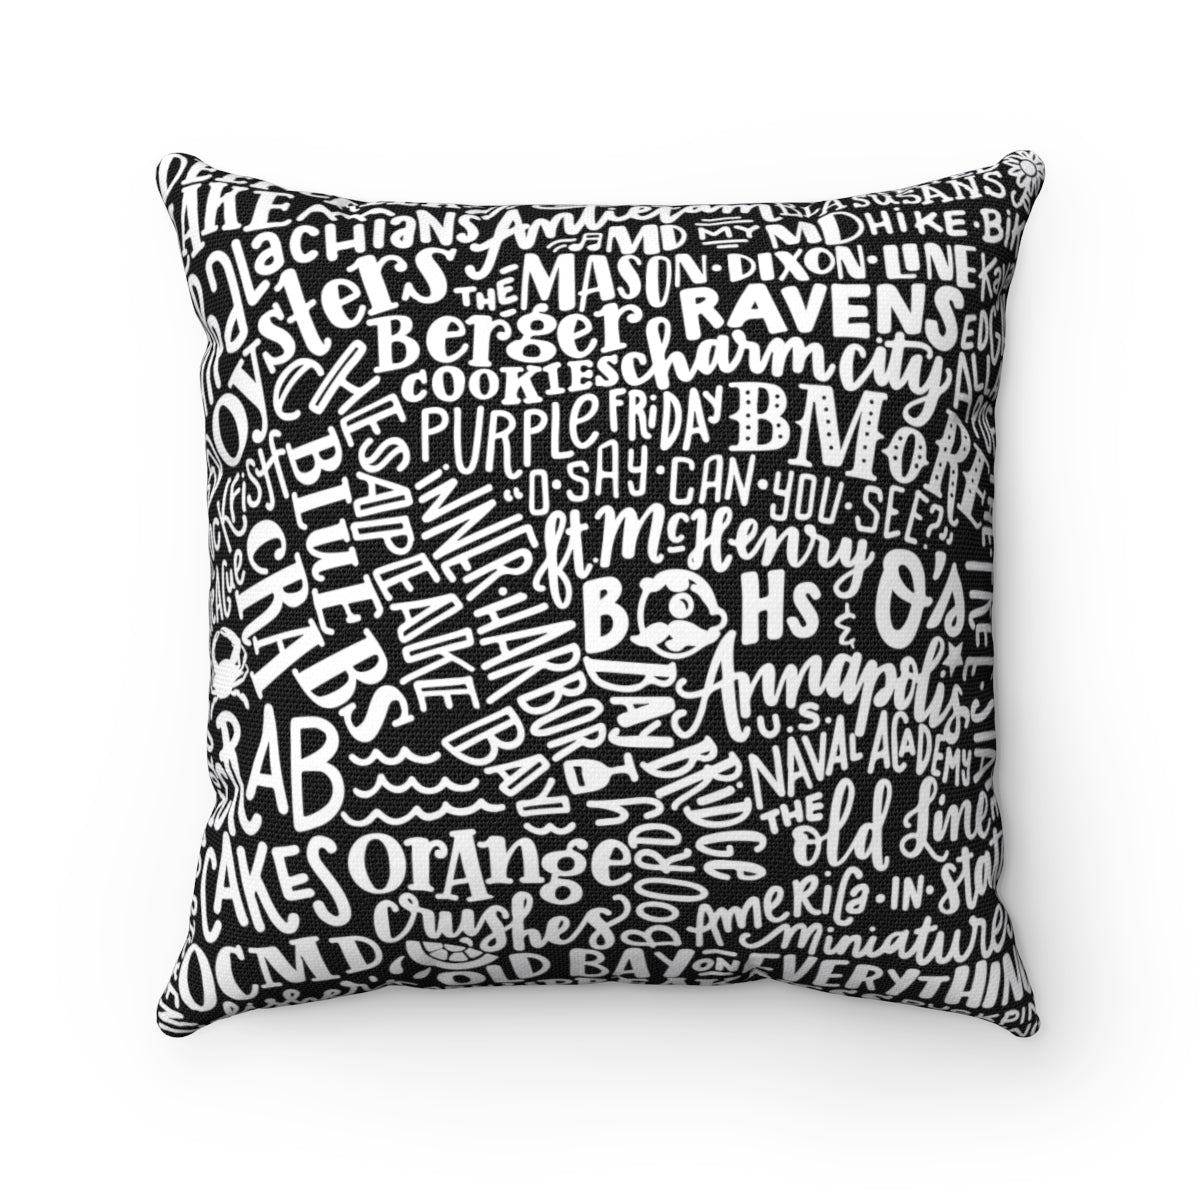 Bmore Wordy - Accent Pillow